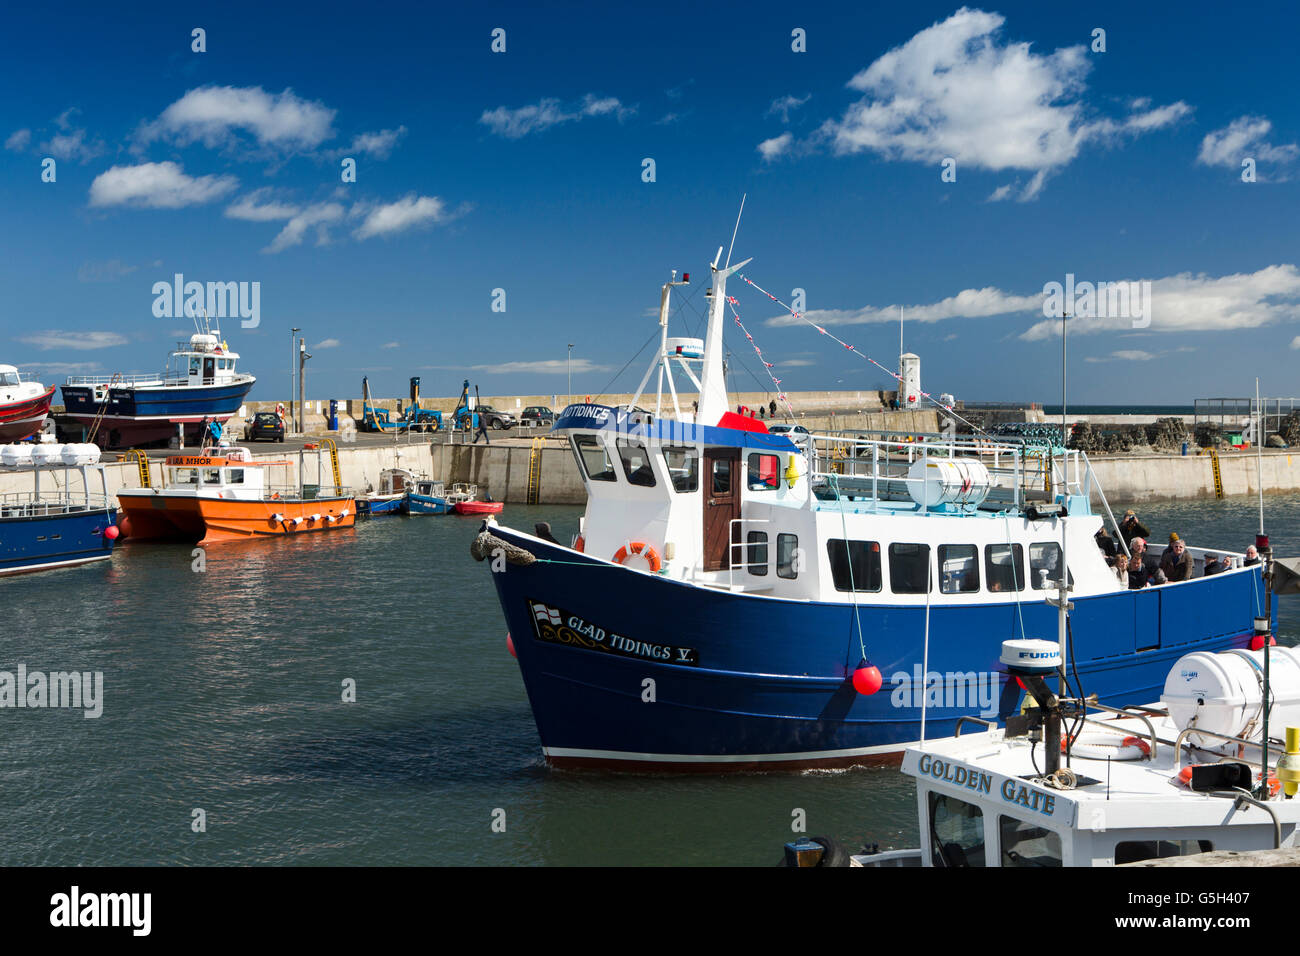 UK, England Northumberland, Seahouses Harbour, Glad Tridings V Farne Islands boat trip vessel returning Stock Photo